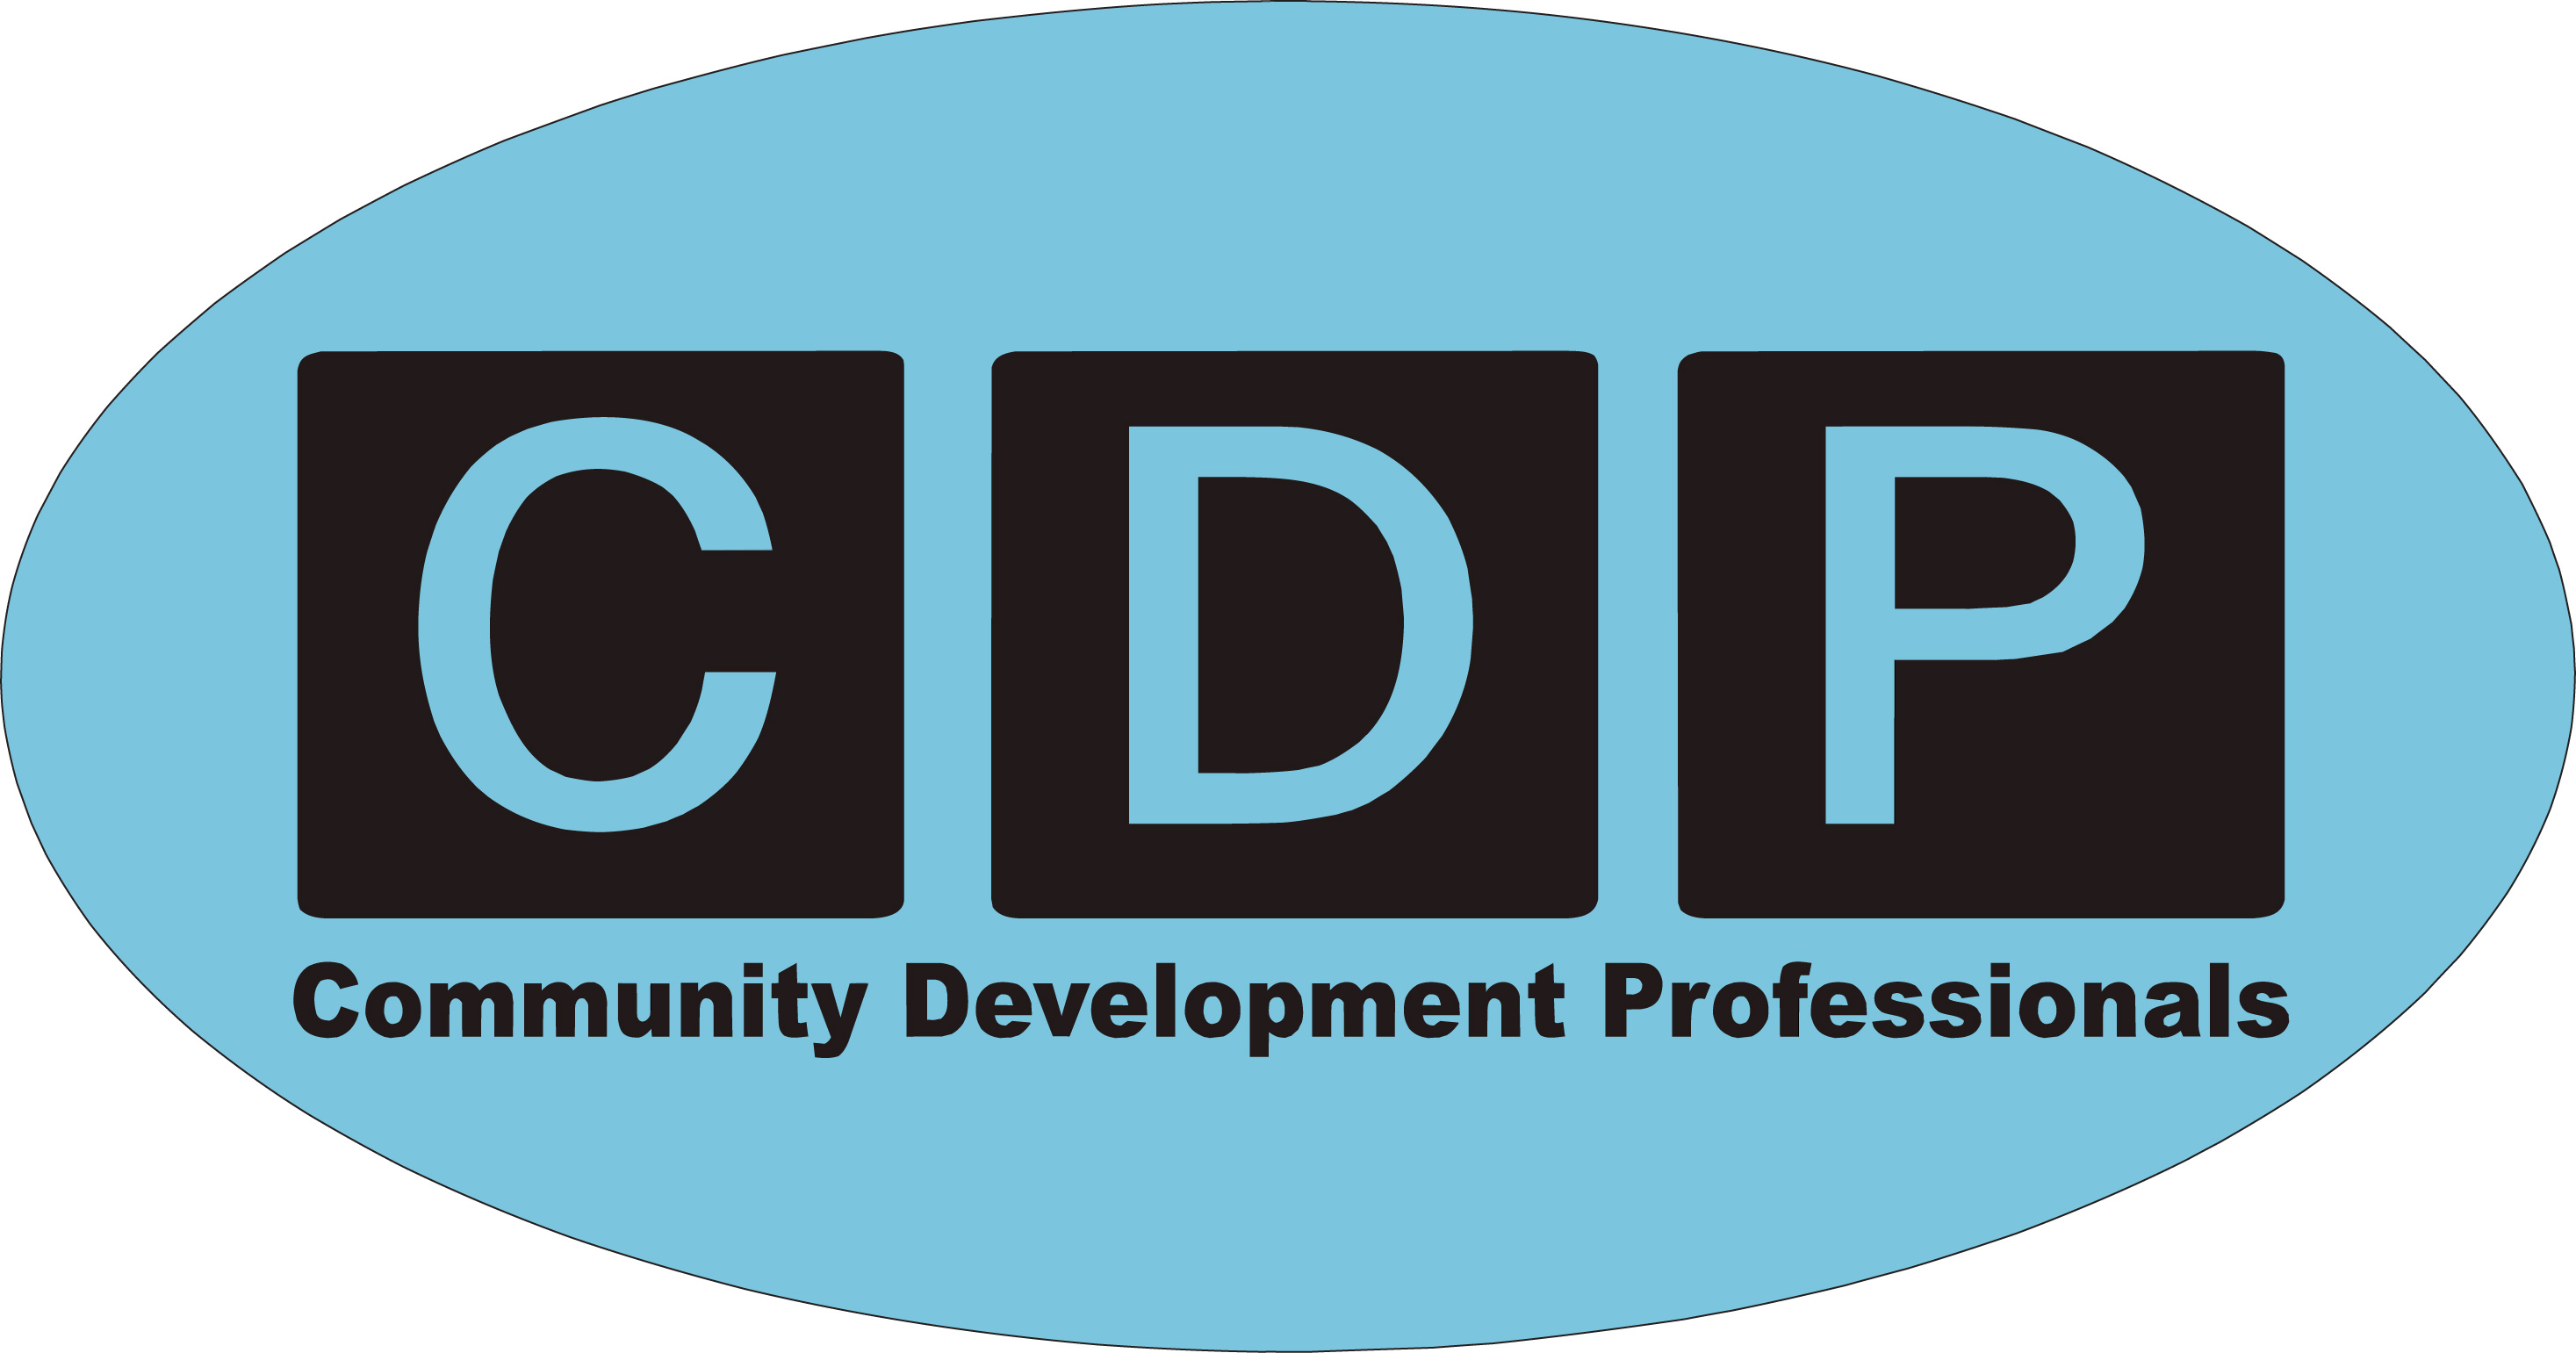 Community Development Professionals Website